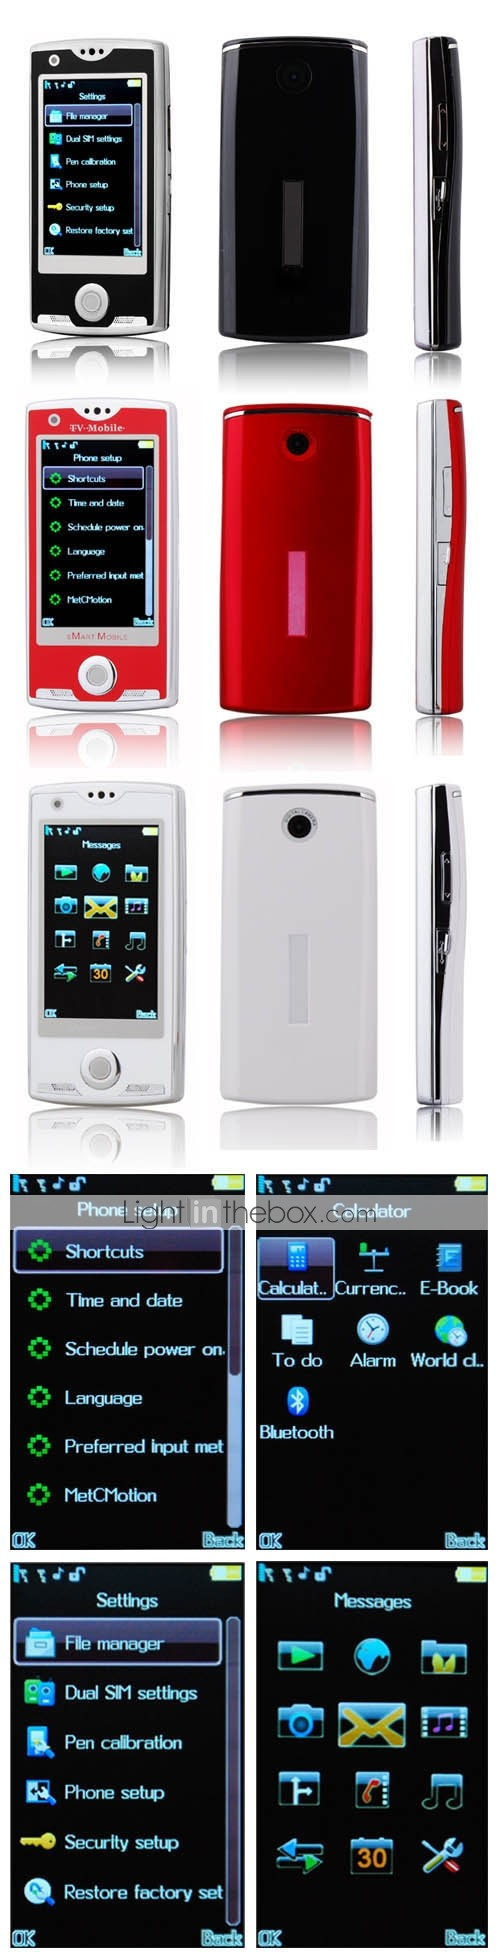 Z105 Quad Band Dual Card TV JAVA Dual Camera Trackball Design Flat Touch Screen Slide Cell Phone (2GB TF Card)